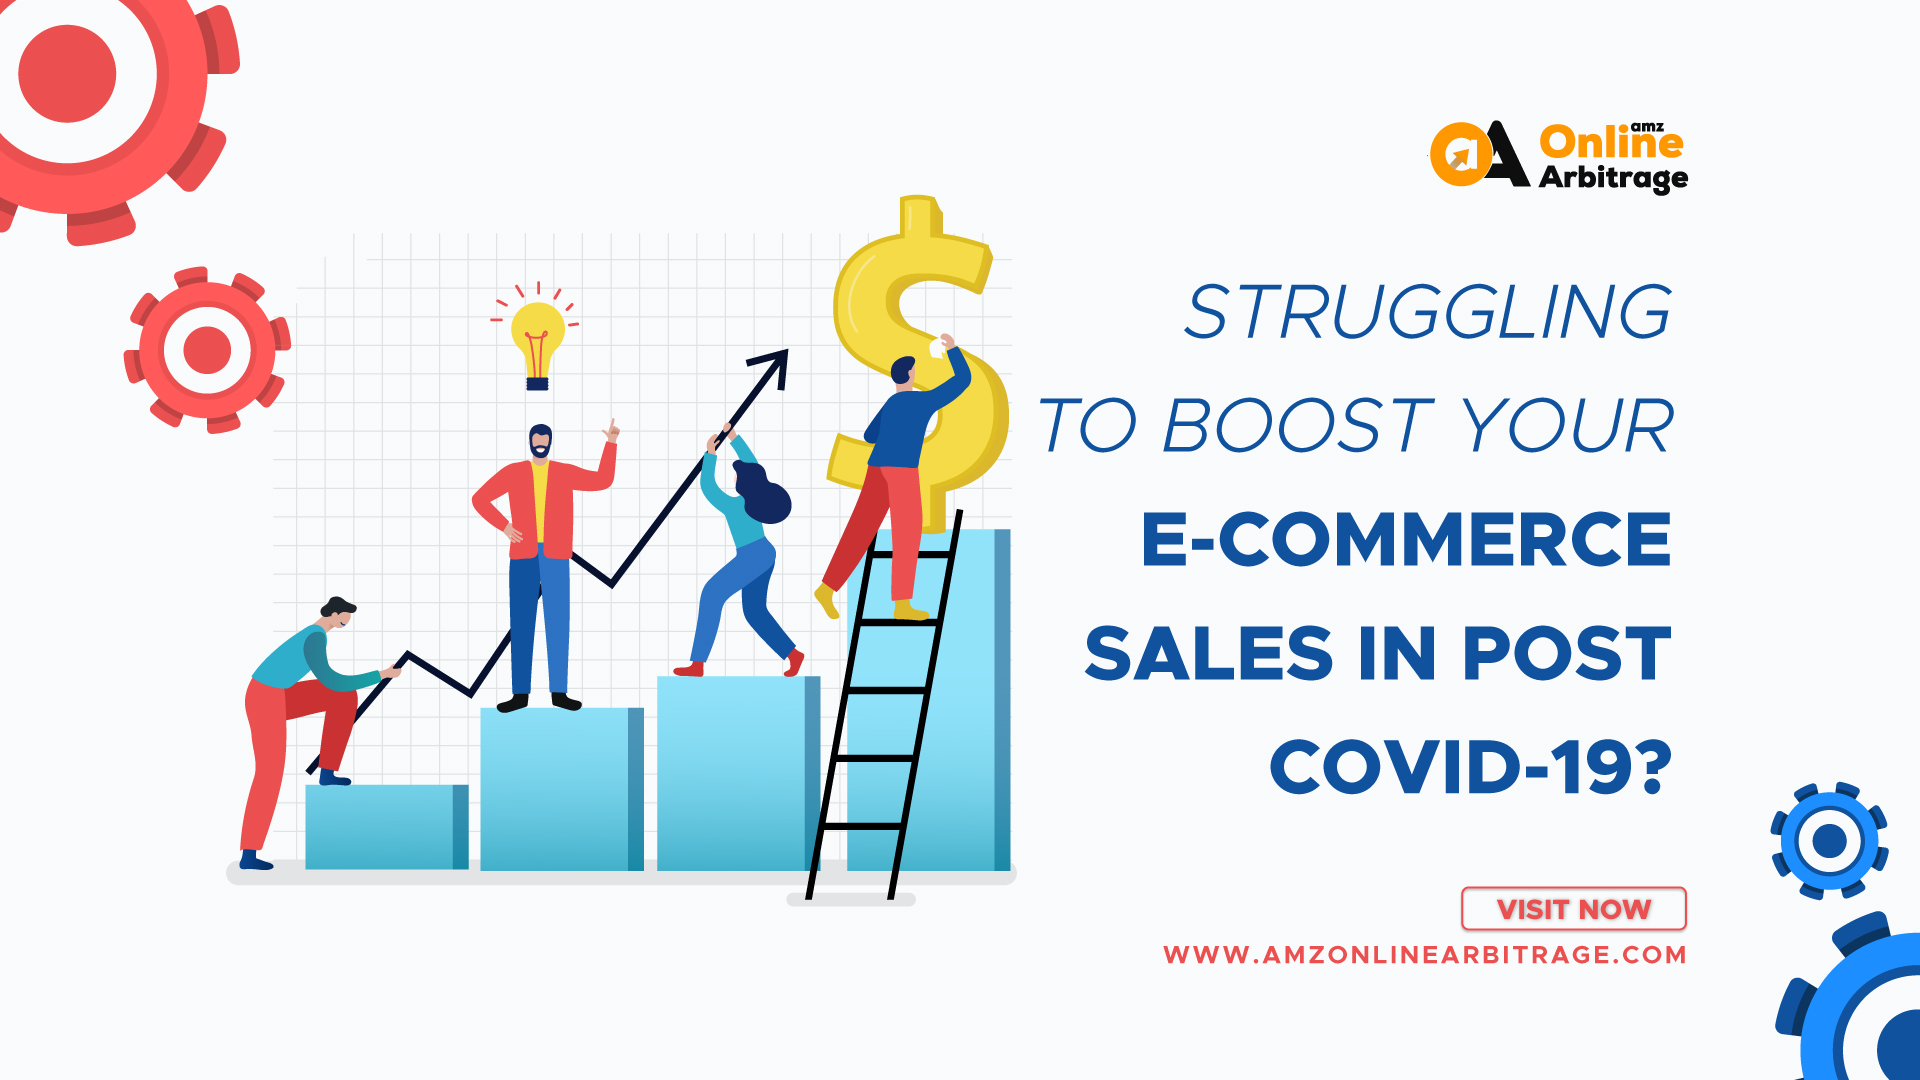 STRUGGLING TO BOOST YOUR E-COMMERCE SALES IN POST COVID-19?